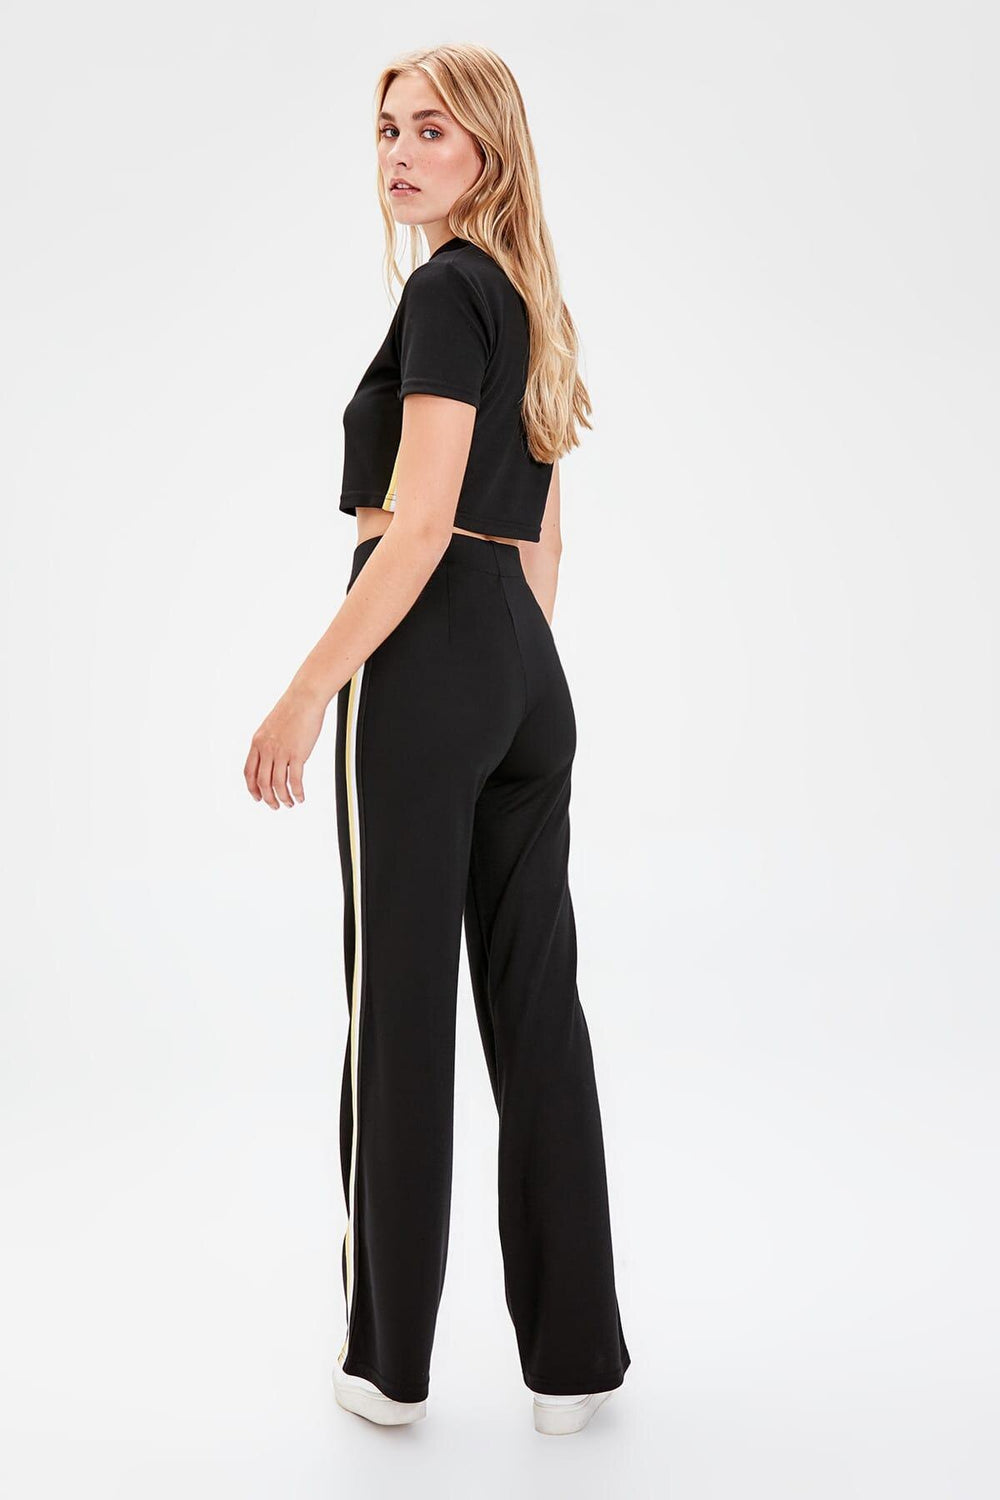 Miss Zut Miss Zut Black Knitted Pants Miss Zut &CO